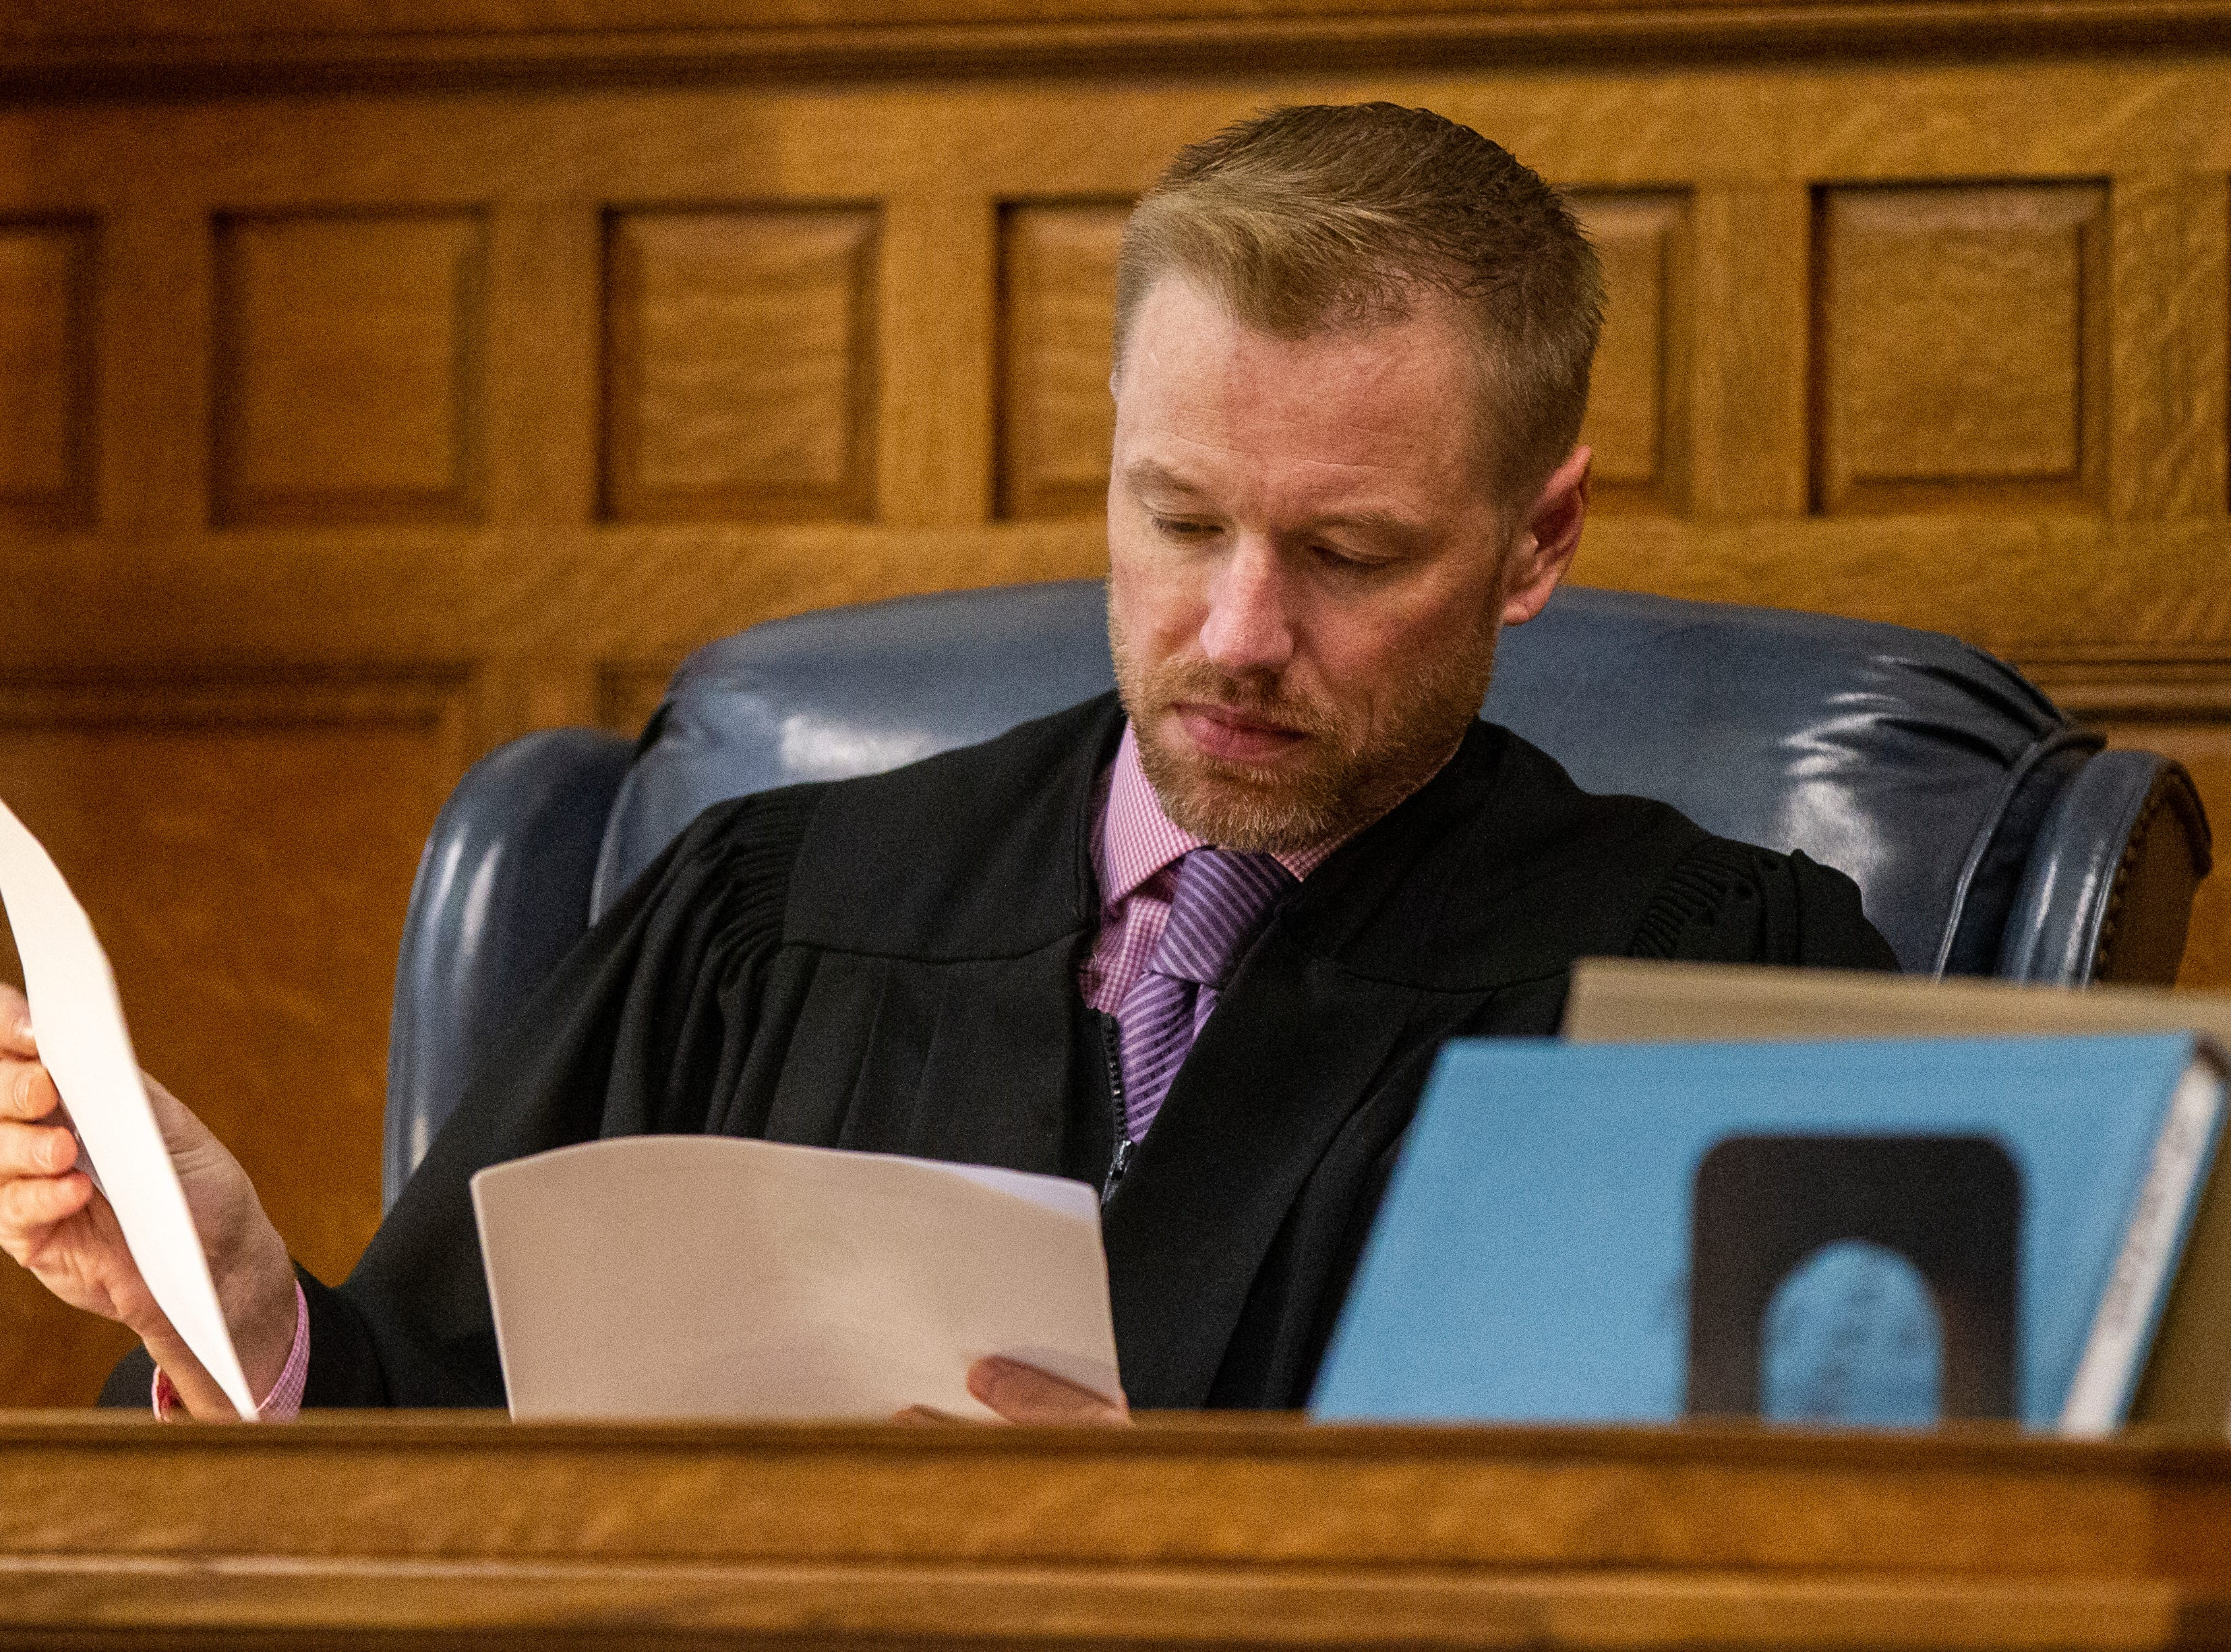 Judge Lars G. Anderson looks through papers during a pre-trial hearing for Curtis Jones on Wednesday, Sept. 26, 2018, at the Johnson County Courthouse in Iowa City.